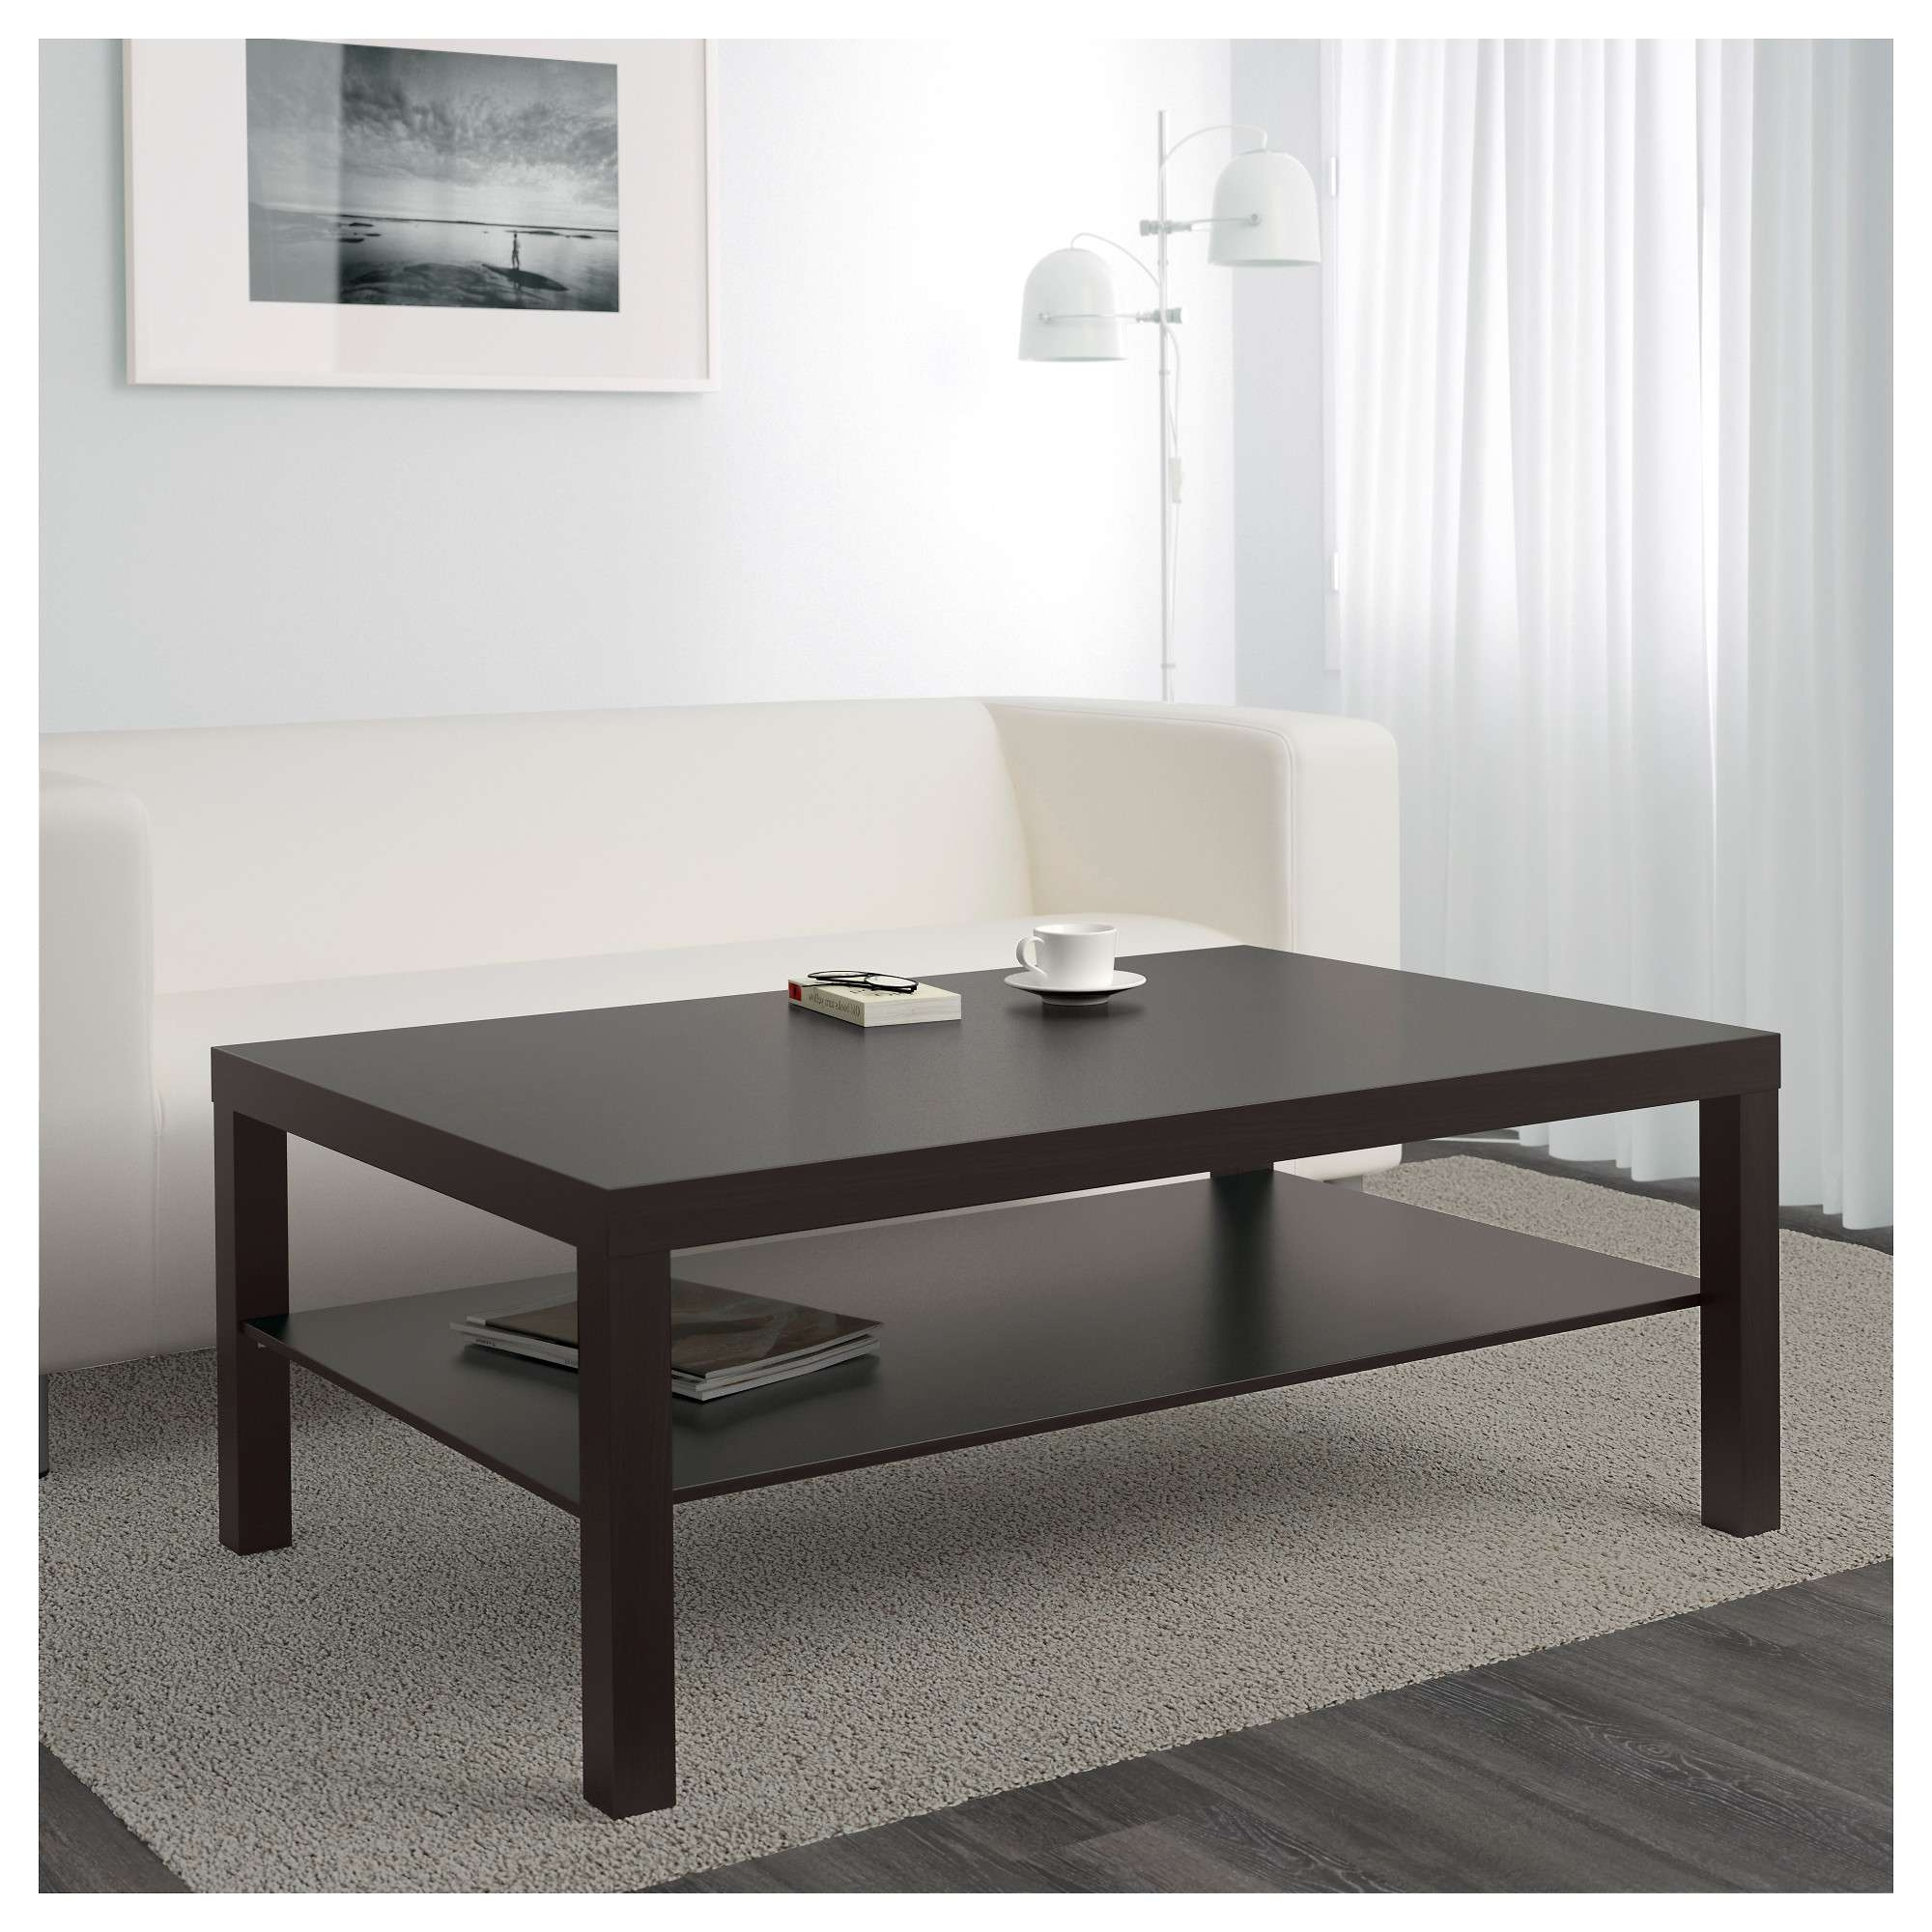 Newest Dark Brown Coffee Tables Within Lack Coffee Table – Black Brown – Ikea (View 3 of 20)